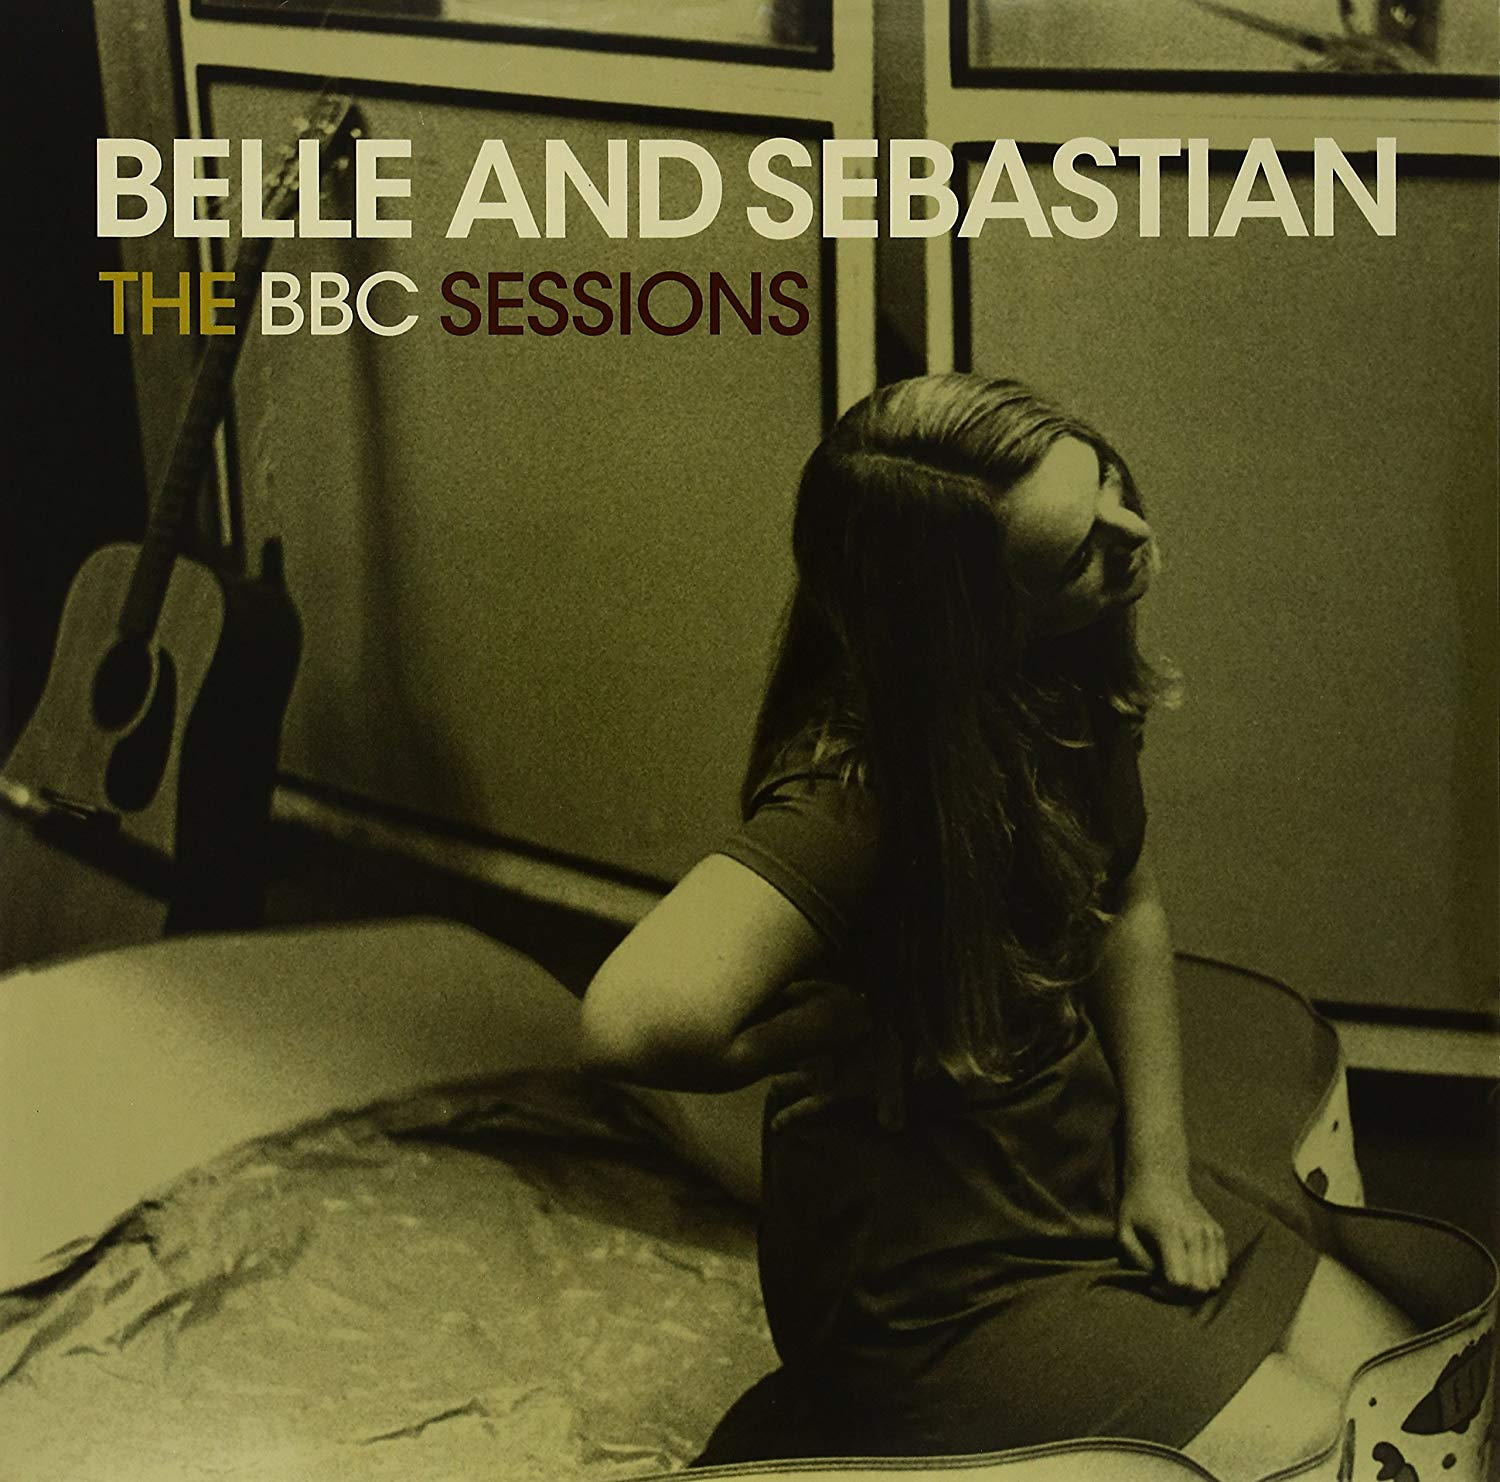 The BBC Sessions by Belle And Sebastian (Jeepster, 2008).